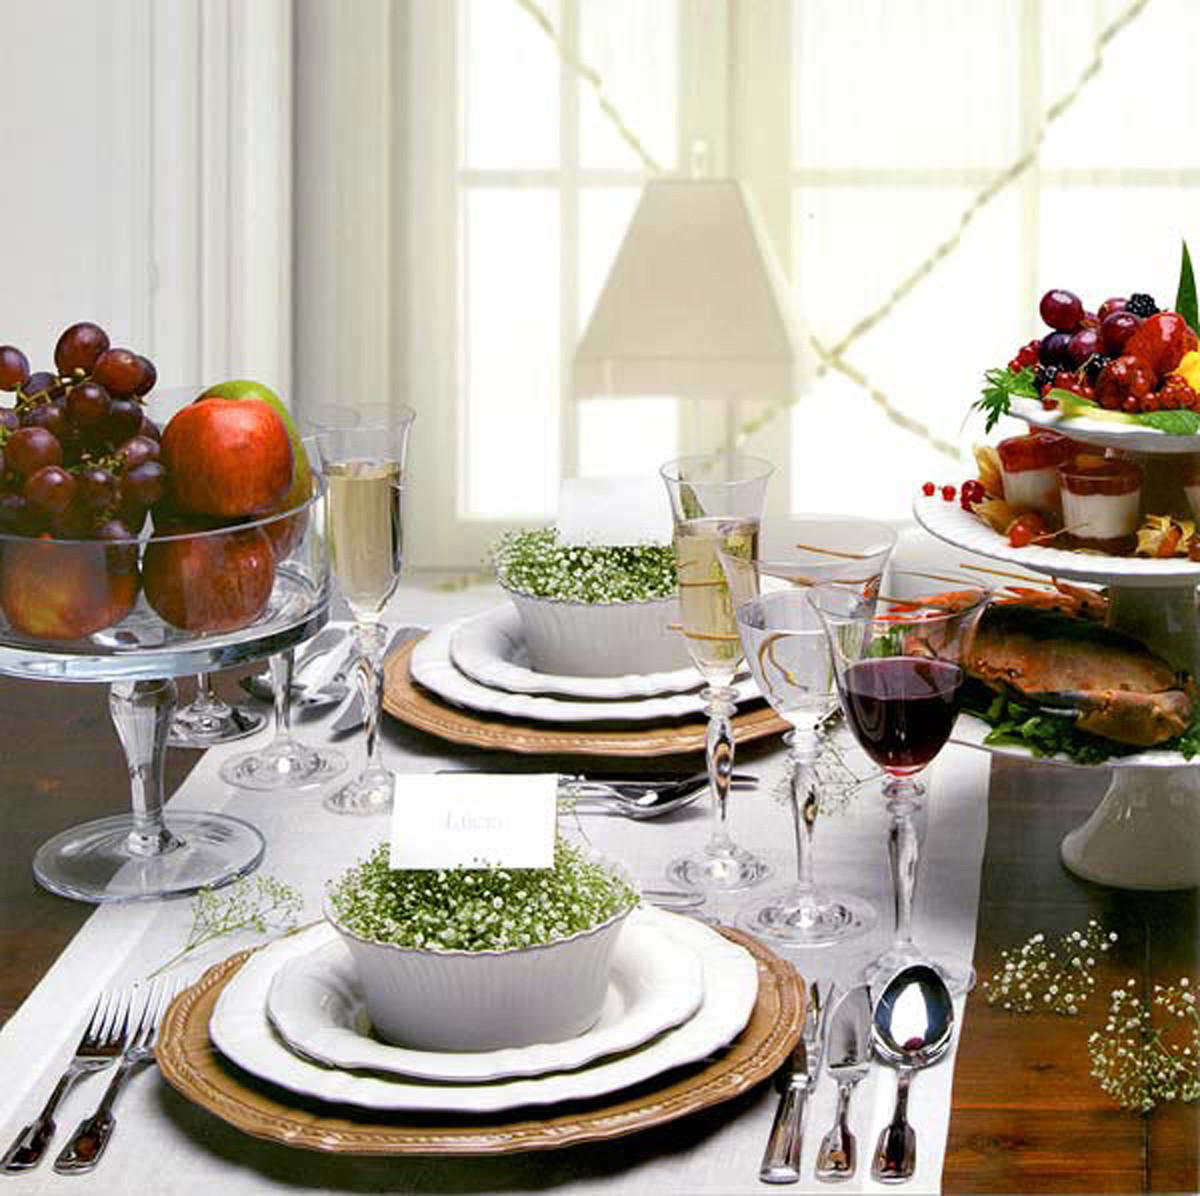 Dinner Table Deco  How to Make Dining Table Décor for Round Table Shape